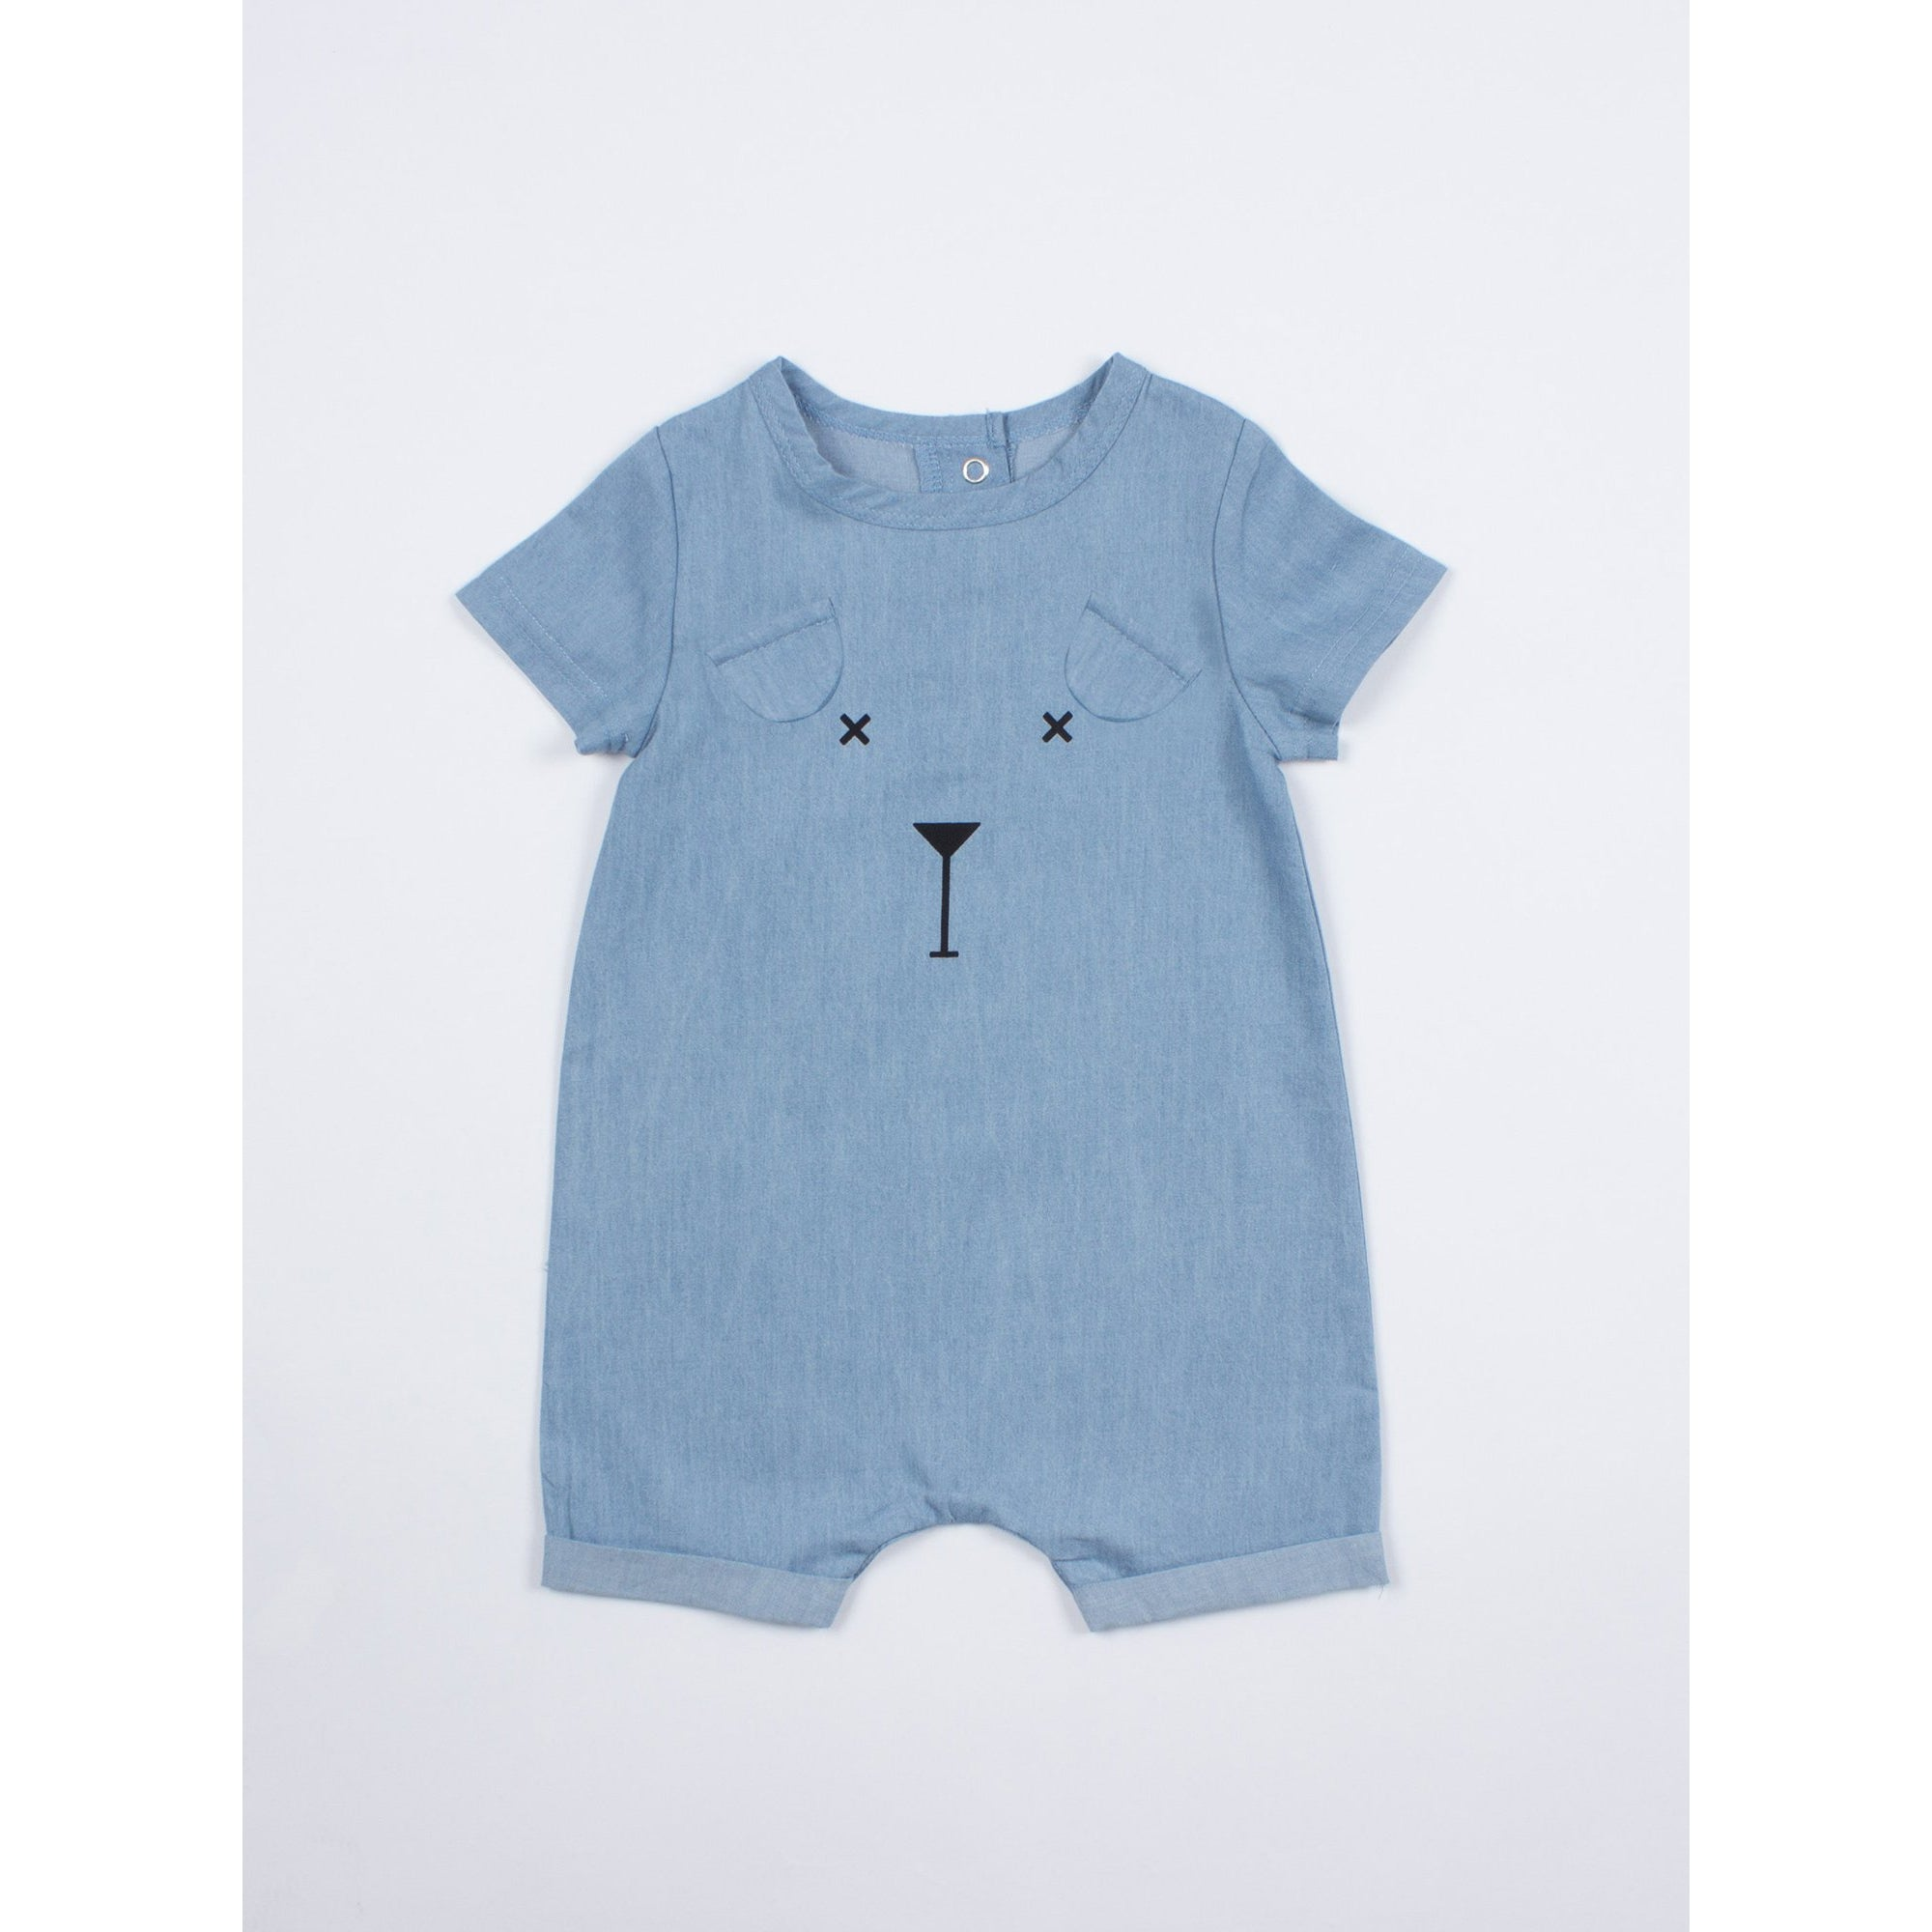 SOOKIbaby | Character Chambray Playsuit - Size 000 LAST ONE